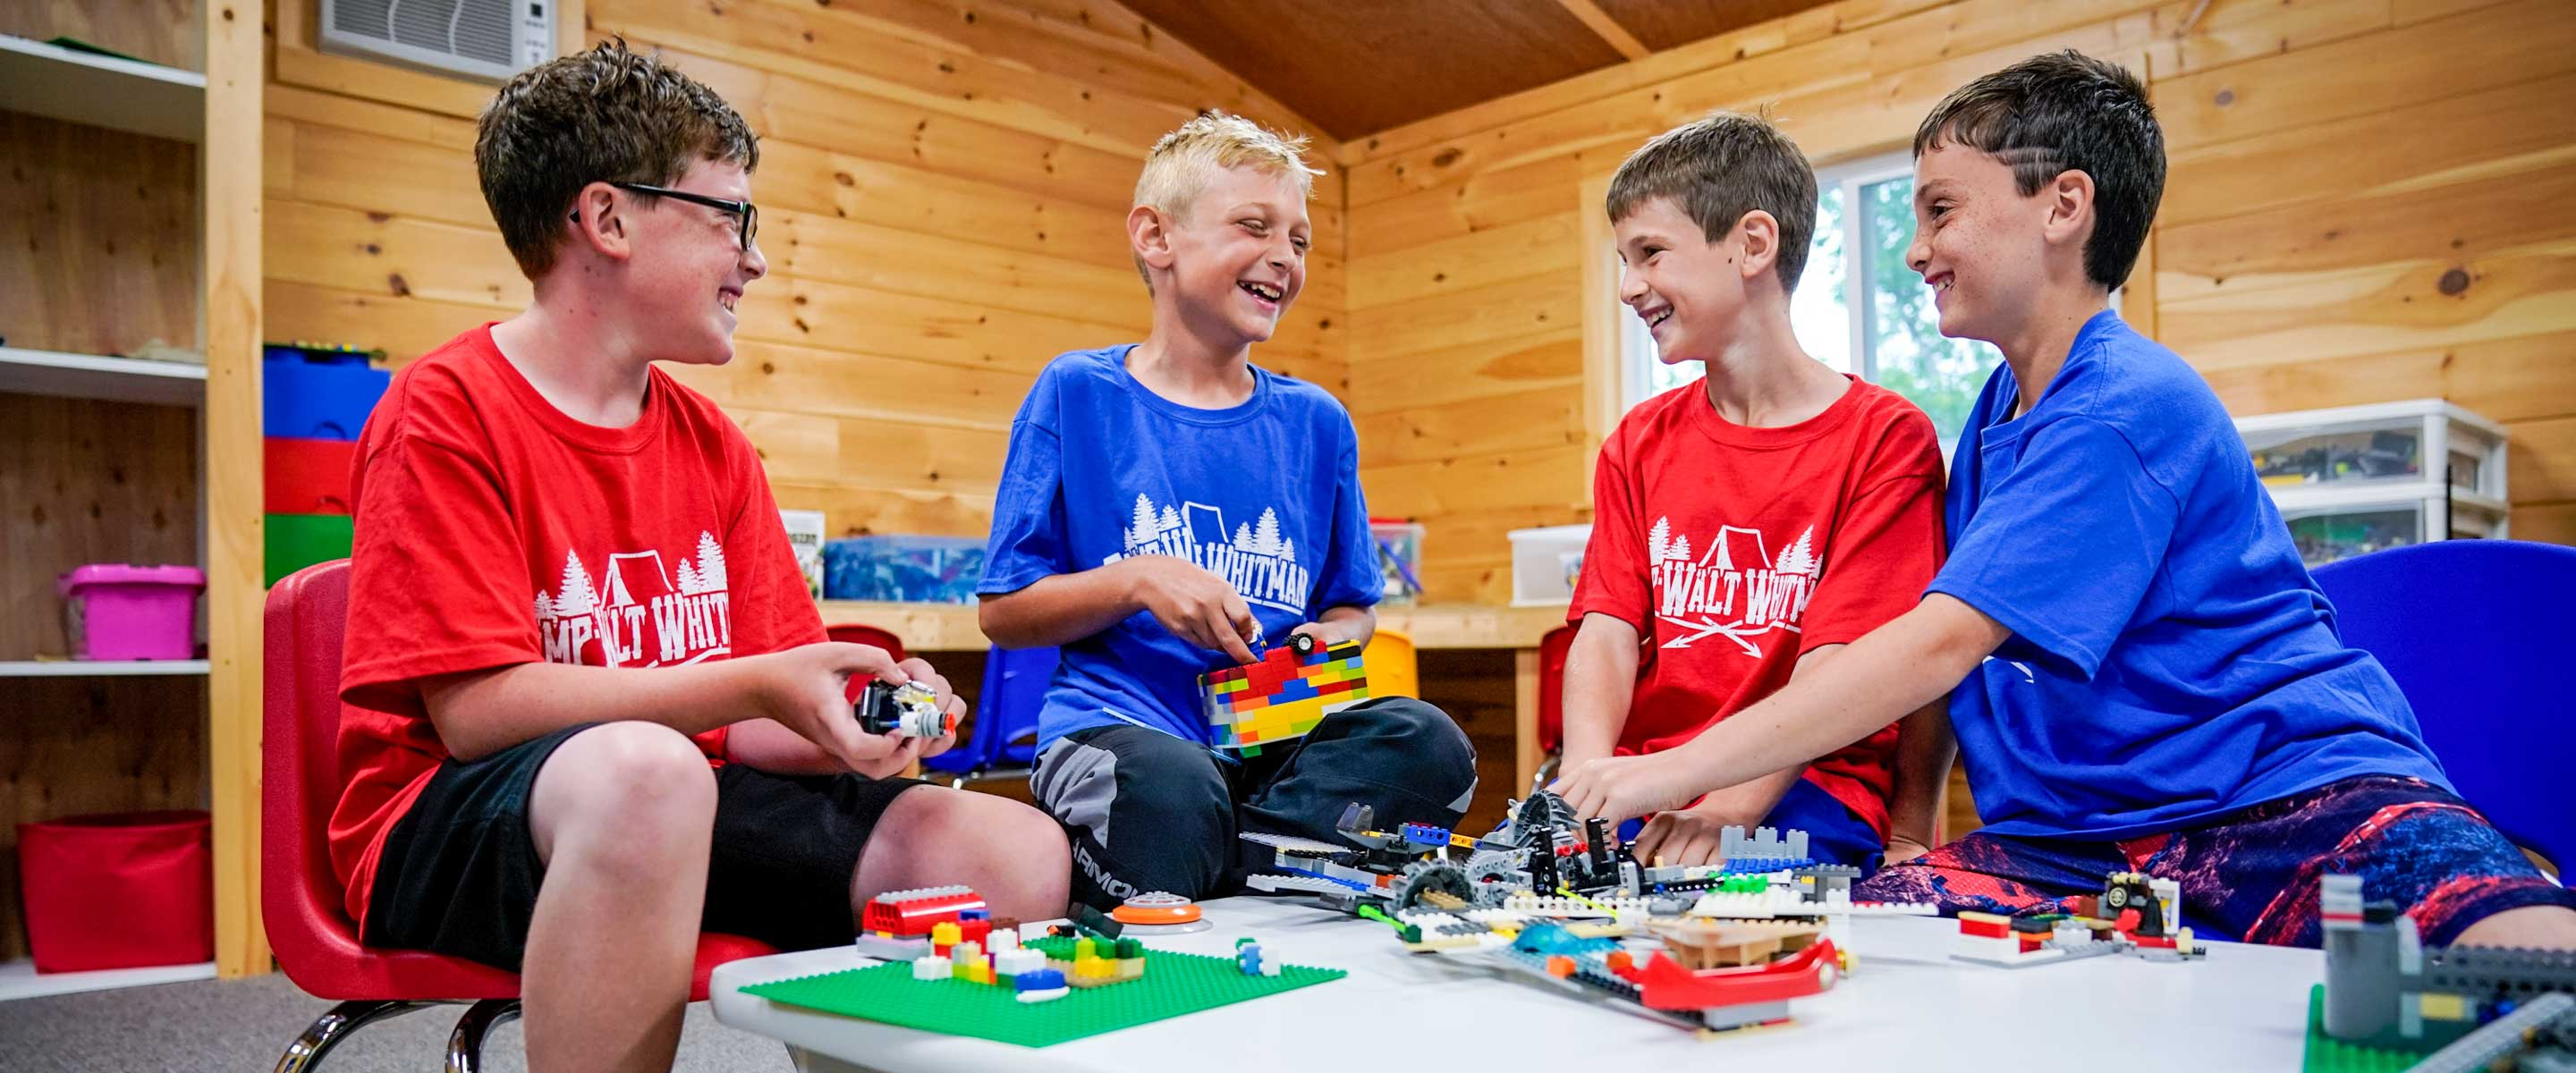 a group of four boys playing with legos